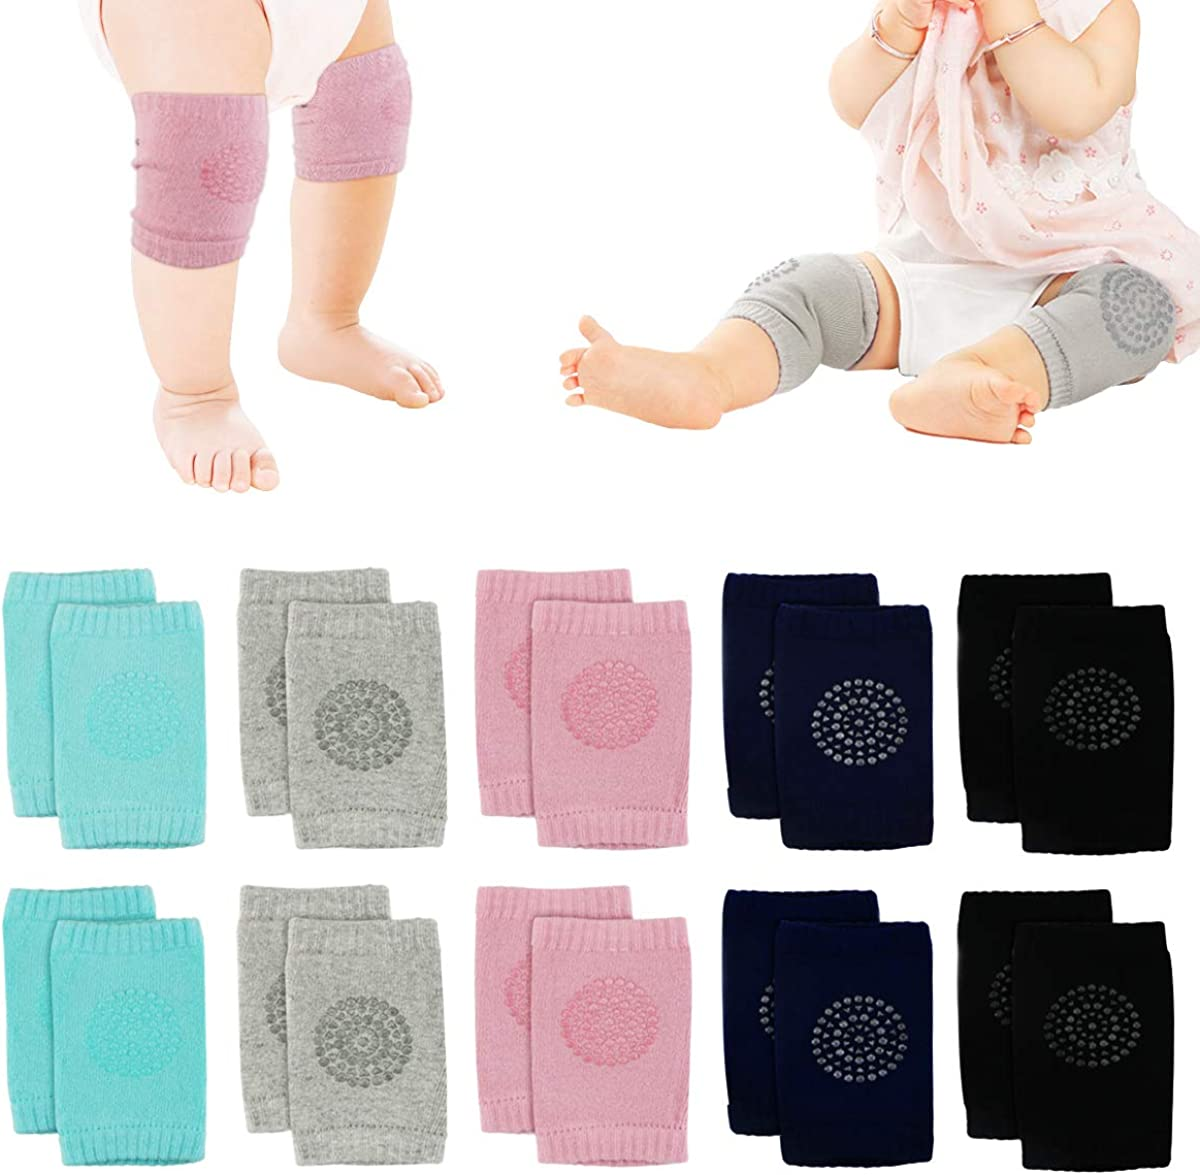 5 Pairs Nextnol Baby Crawling Anti-Slip Knee, Unisex Baby Toddlers Kneepads,Adjustable Knee Elbow Pads Crawling,Safety Protector for 9 months - 2 years